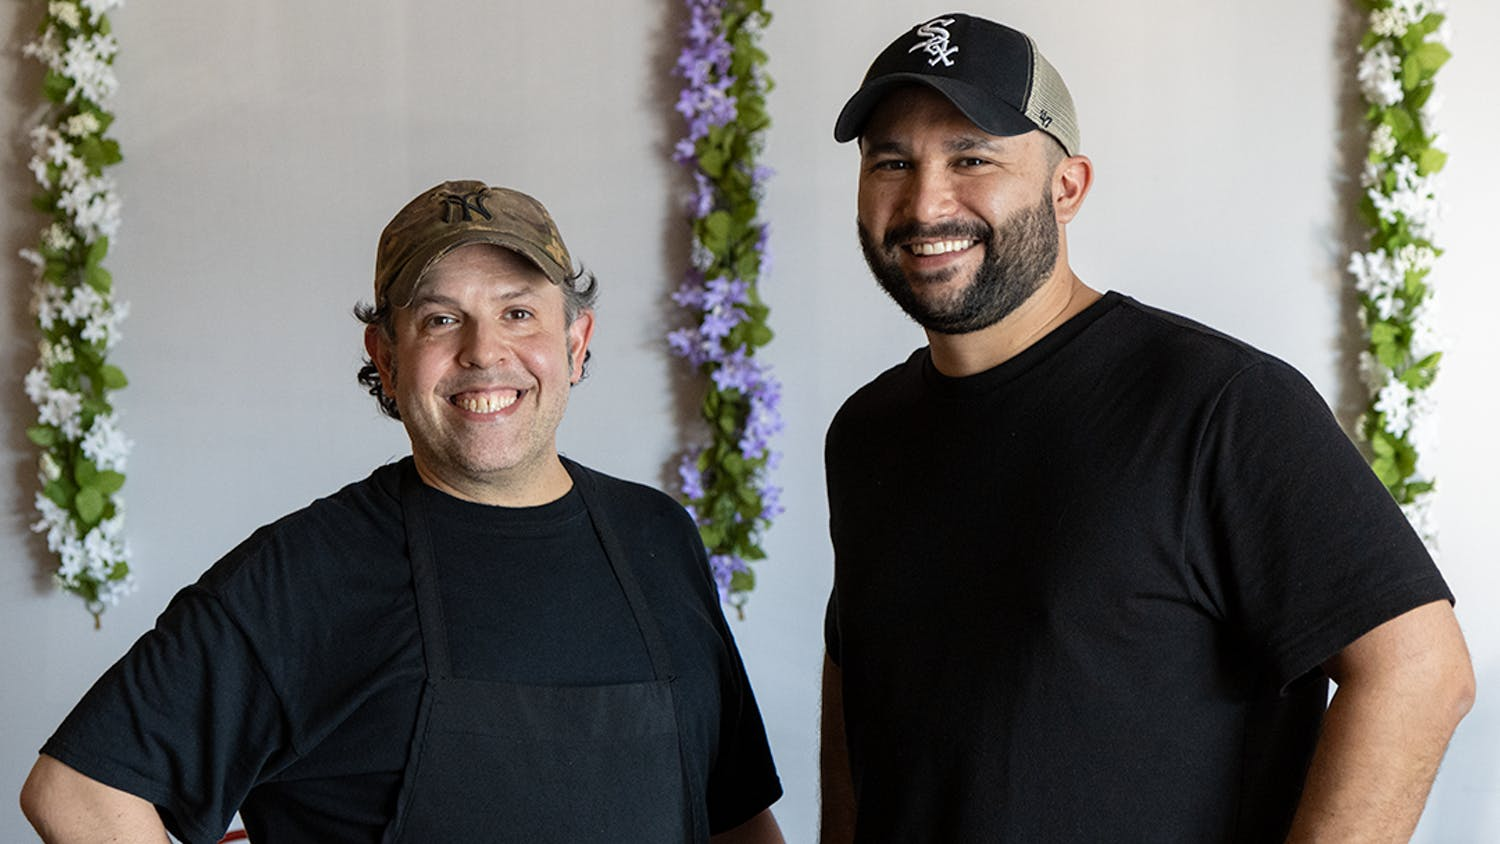 David Grillo (left) and Adam Cabot (right), owners of Boca Grande Burritos in Forest Acres. The restaurant's menu is built to be flexible, offering vegan, vegetarian and gluten-free options.